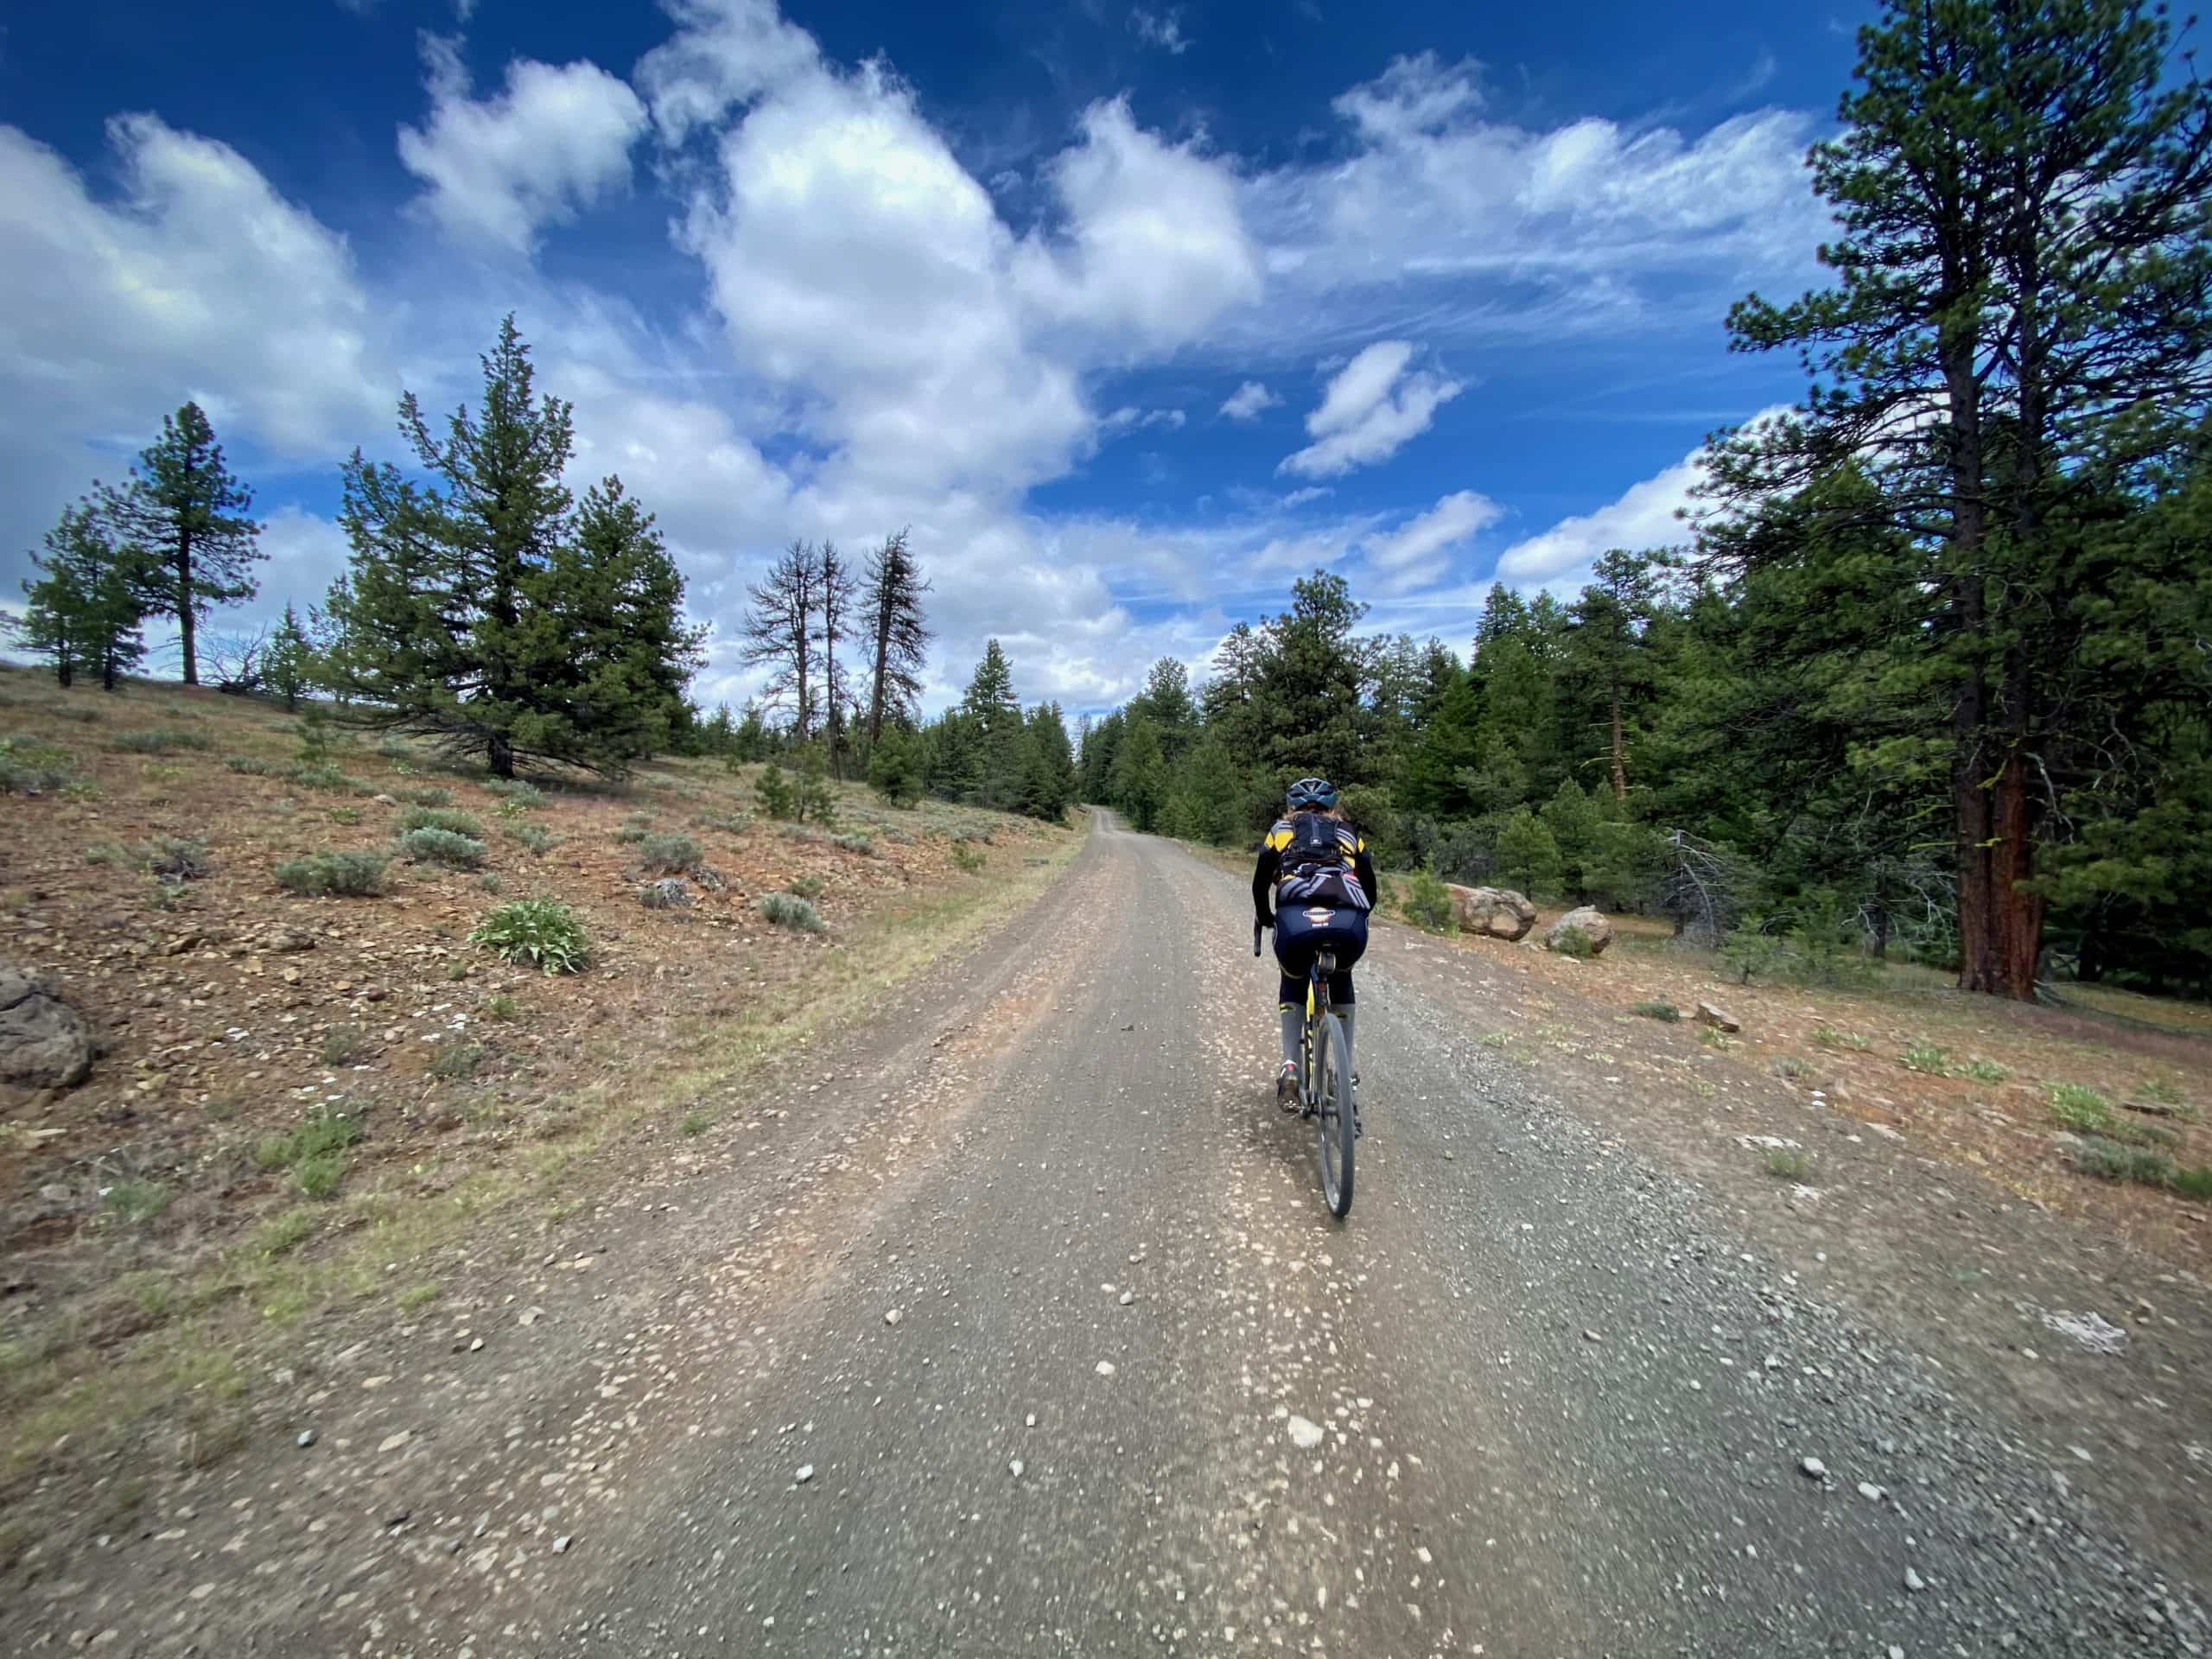 Gravel Girl riding through a red lava flow in the Ochoco Mountains near Mitchell, Oregon.